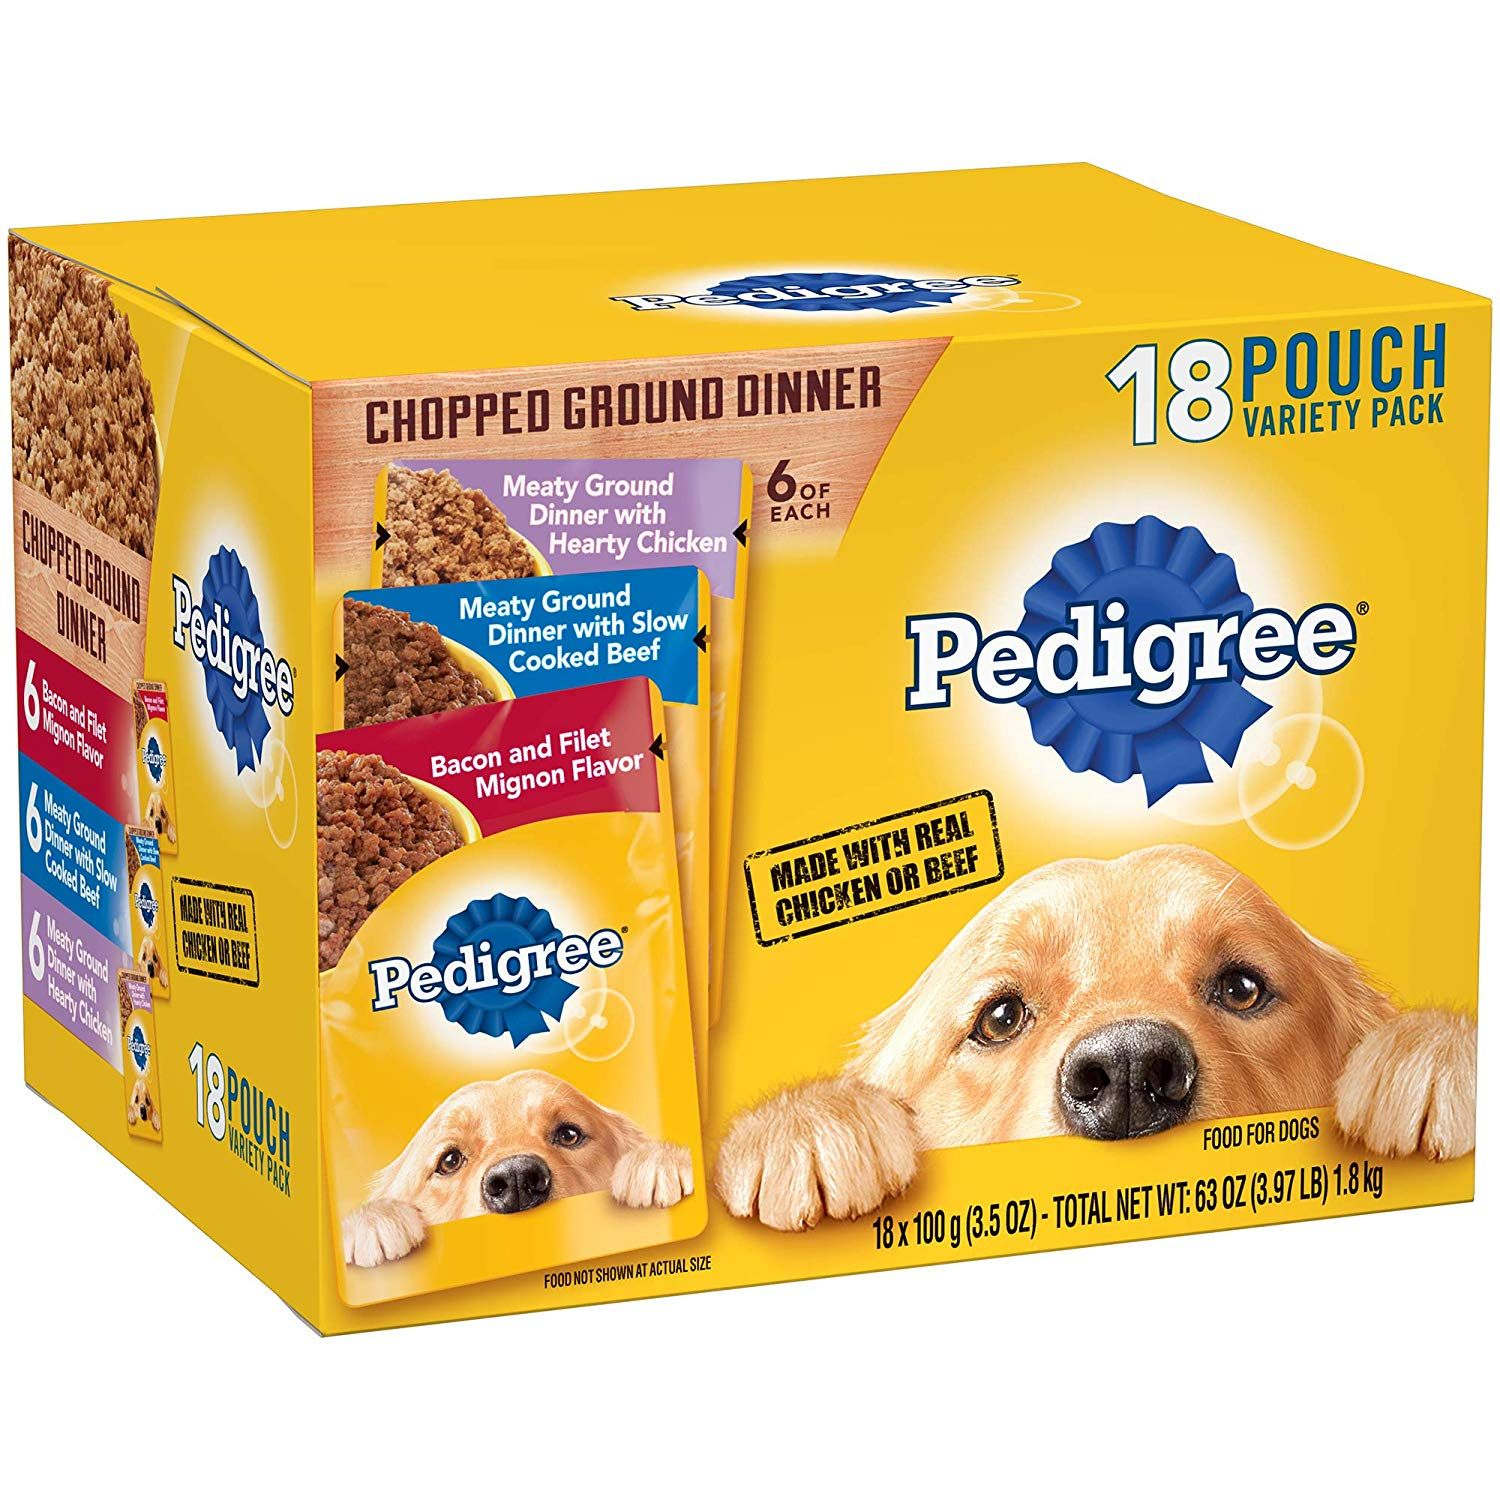 Pedigree Chopped Ground Dinner Adult Wet Dog Food Pouches We